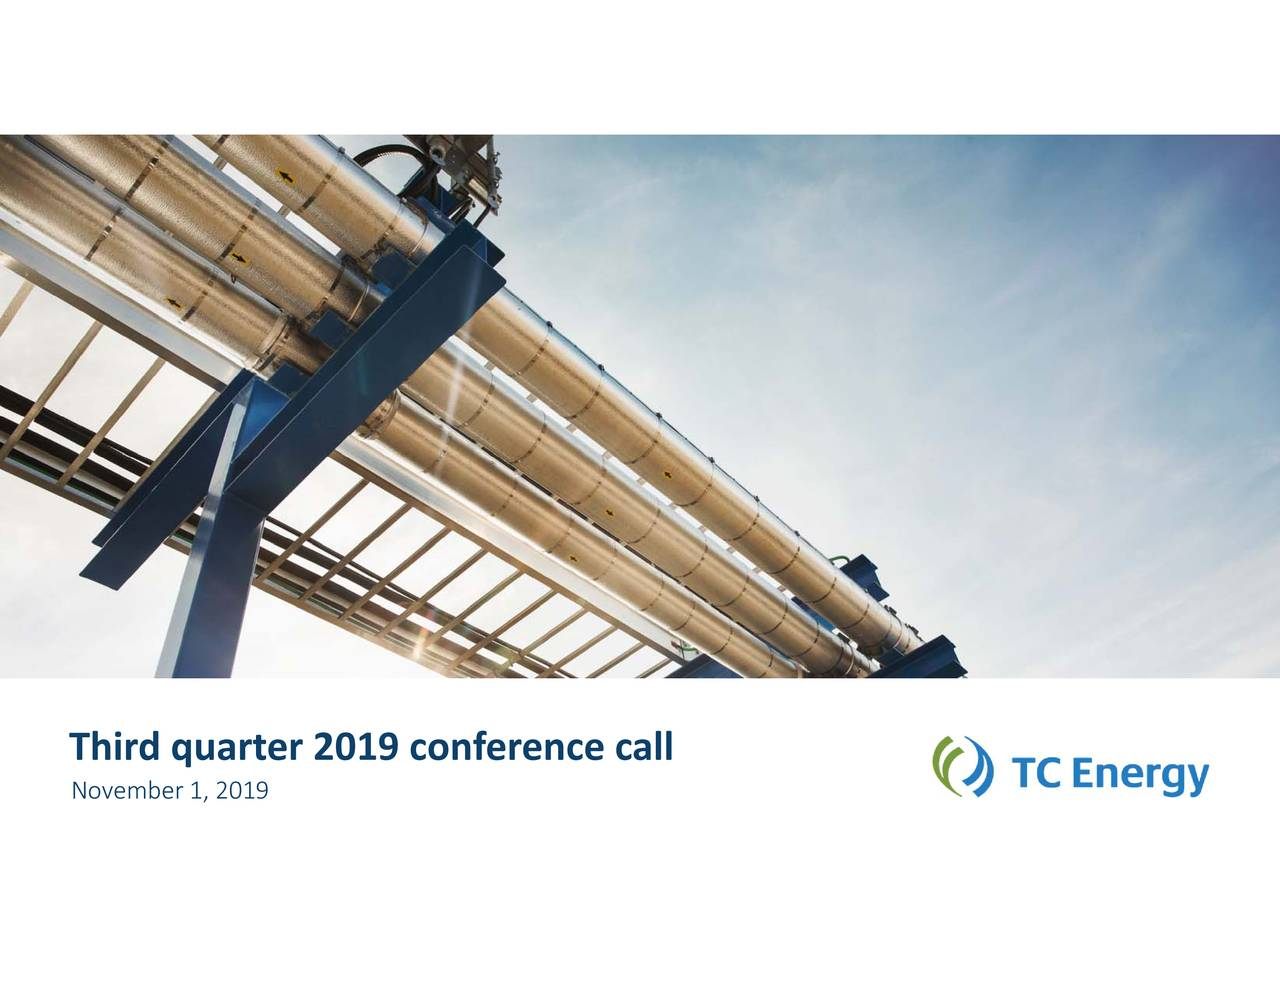 Thirdquarter2019conferencecall